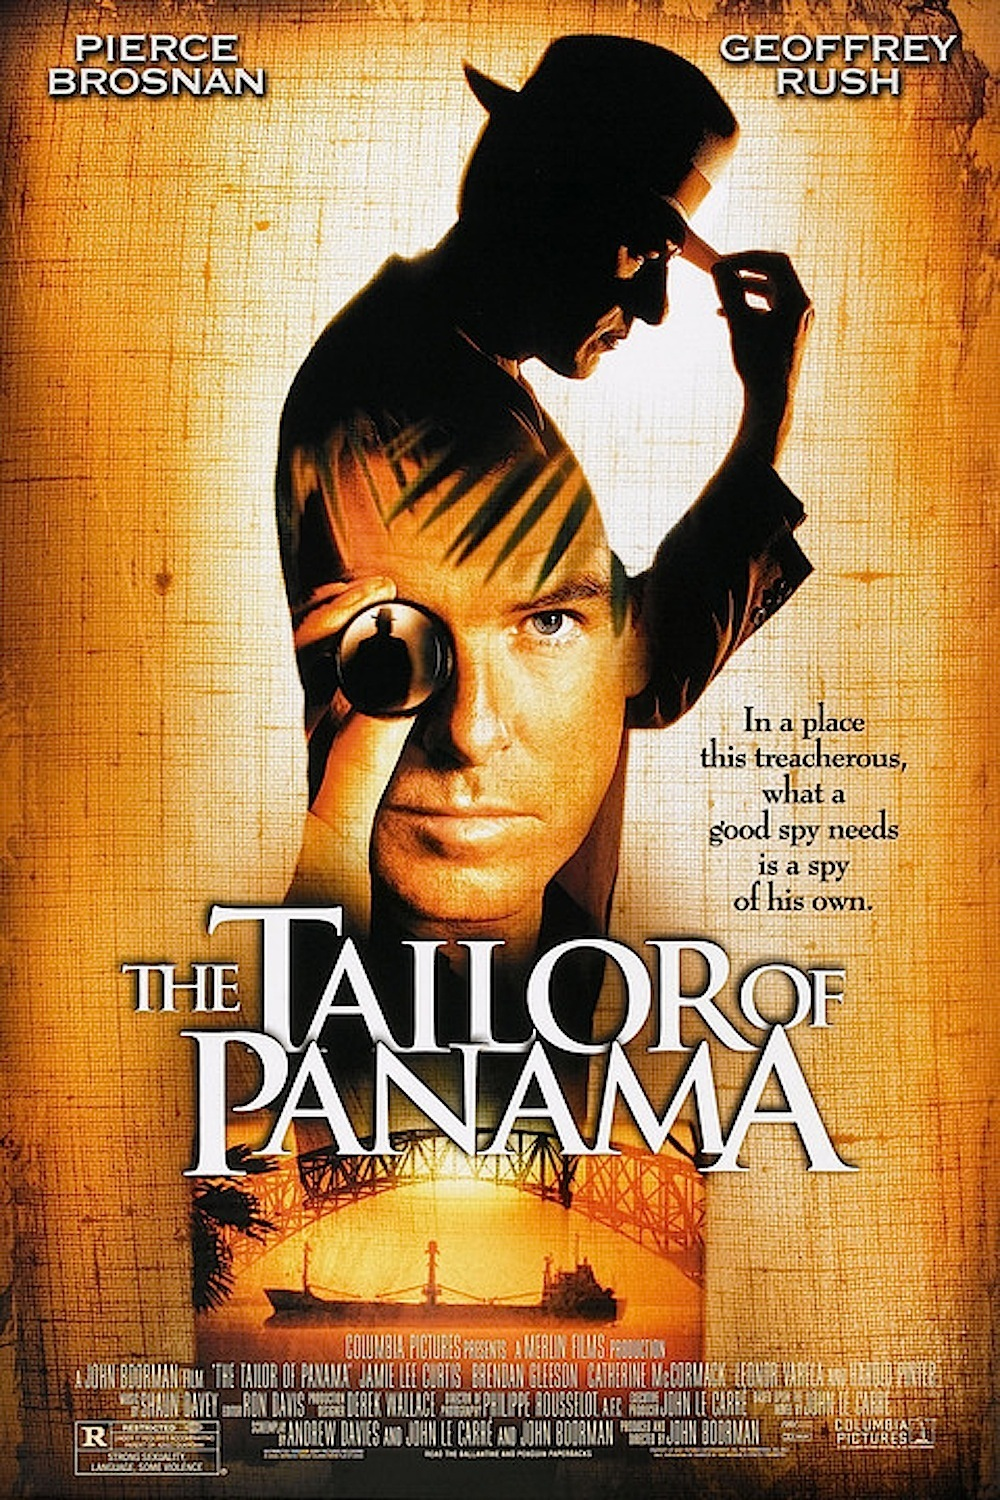 the tailor of panama - Music Recording